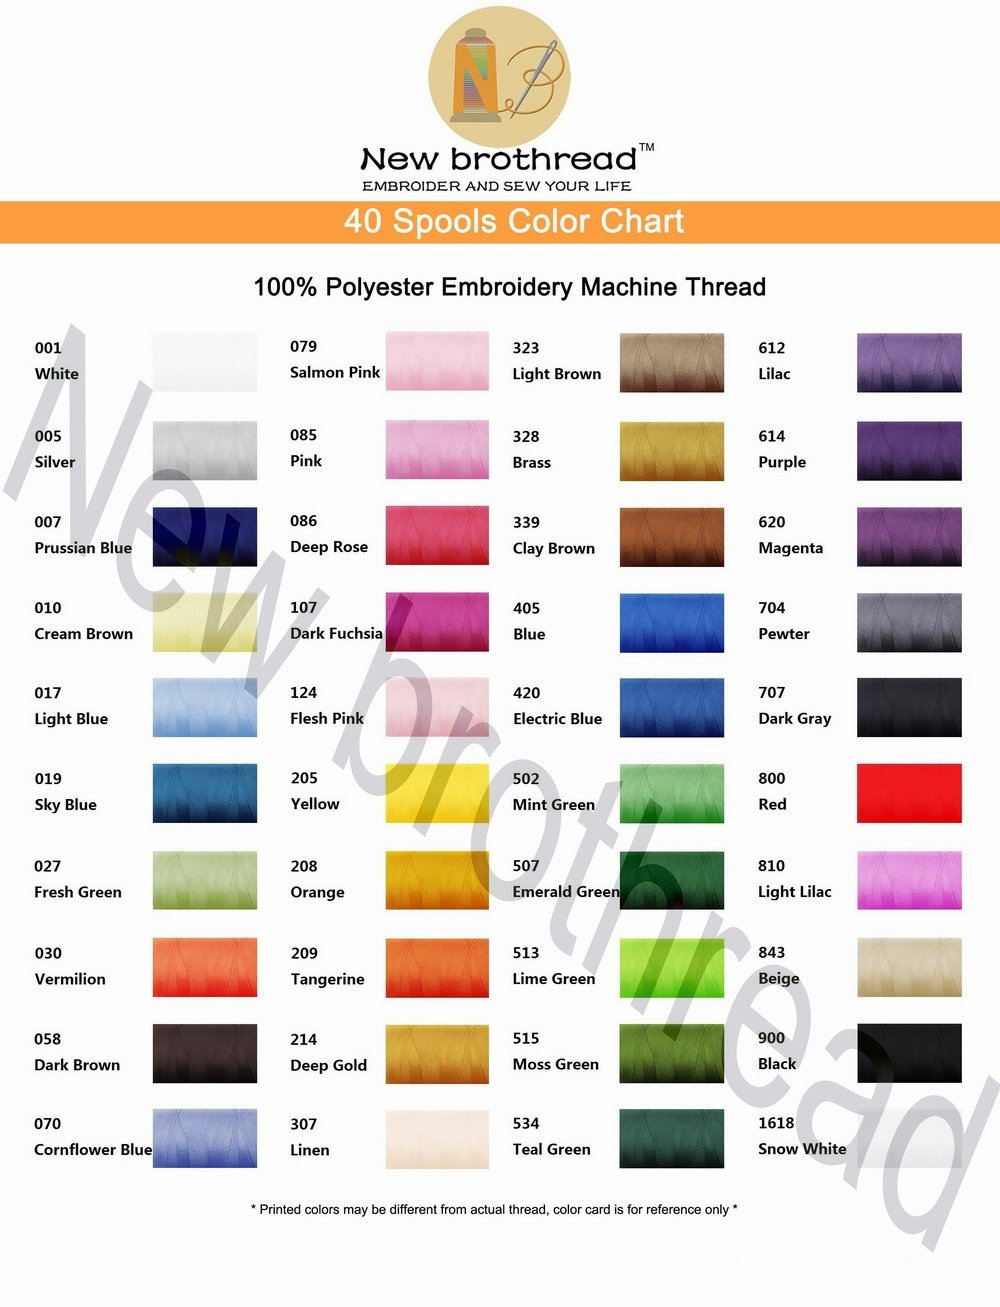 Amazon new brothread 40 brother colors polyester embroidery amazon new brothread 40 brother colors polyester embroidery machine thread kit 500m 550y each spool for brother babylock janome singer pfaff geenschuldenfo Gallery